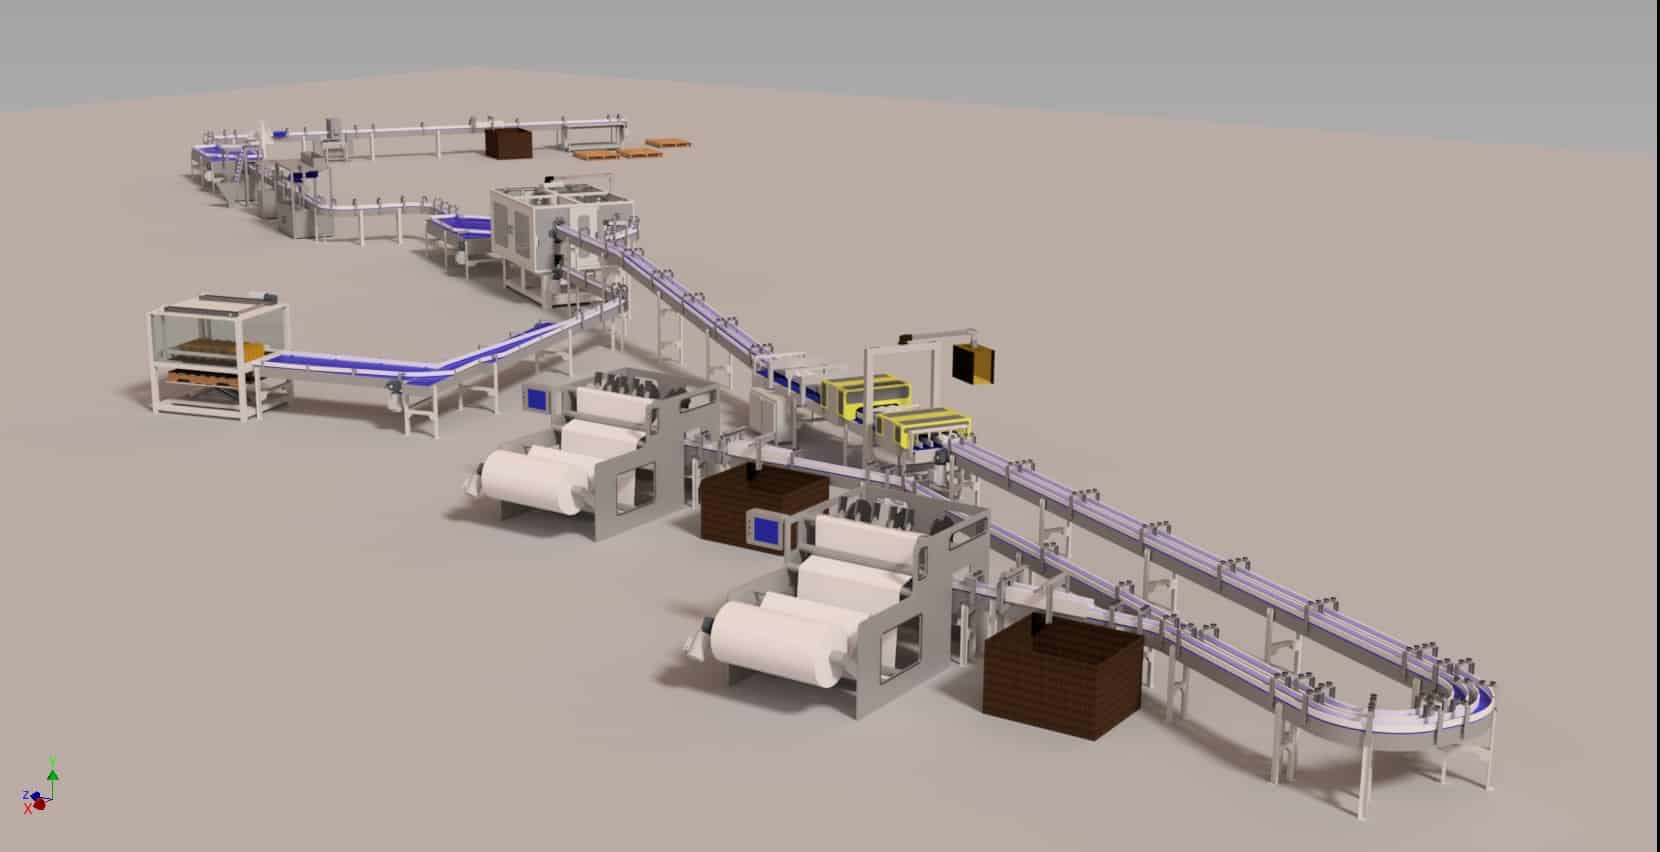 Momentum brand wipes canister loader leads the field in efficiency